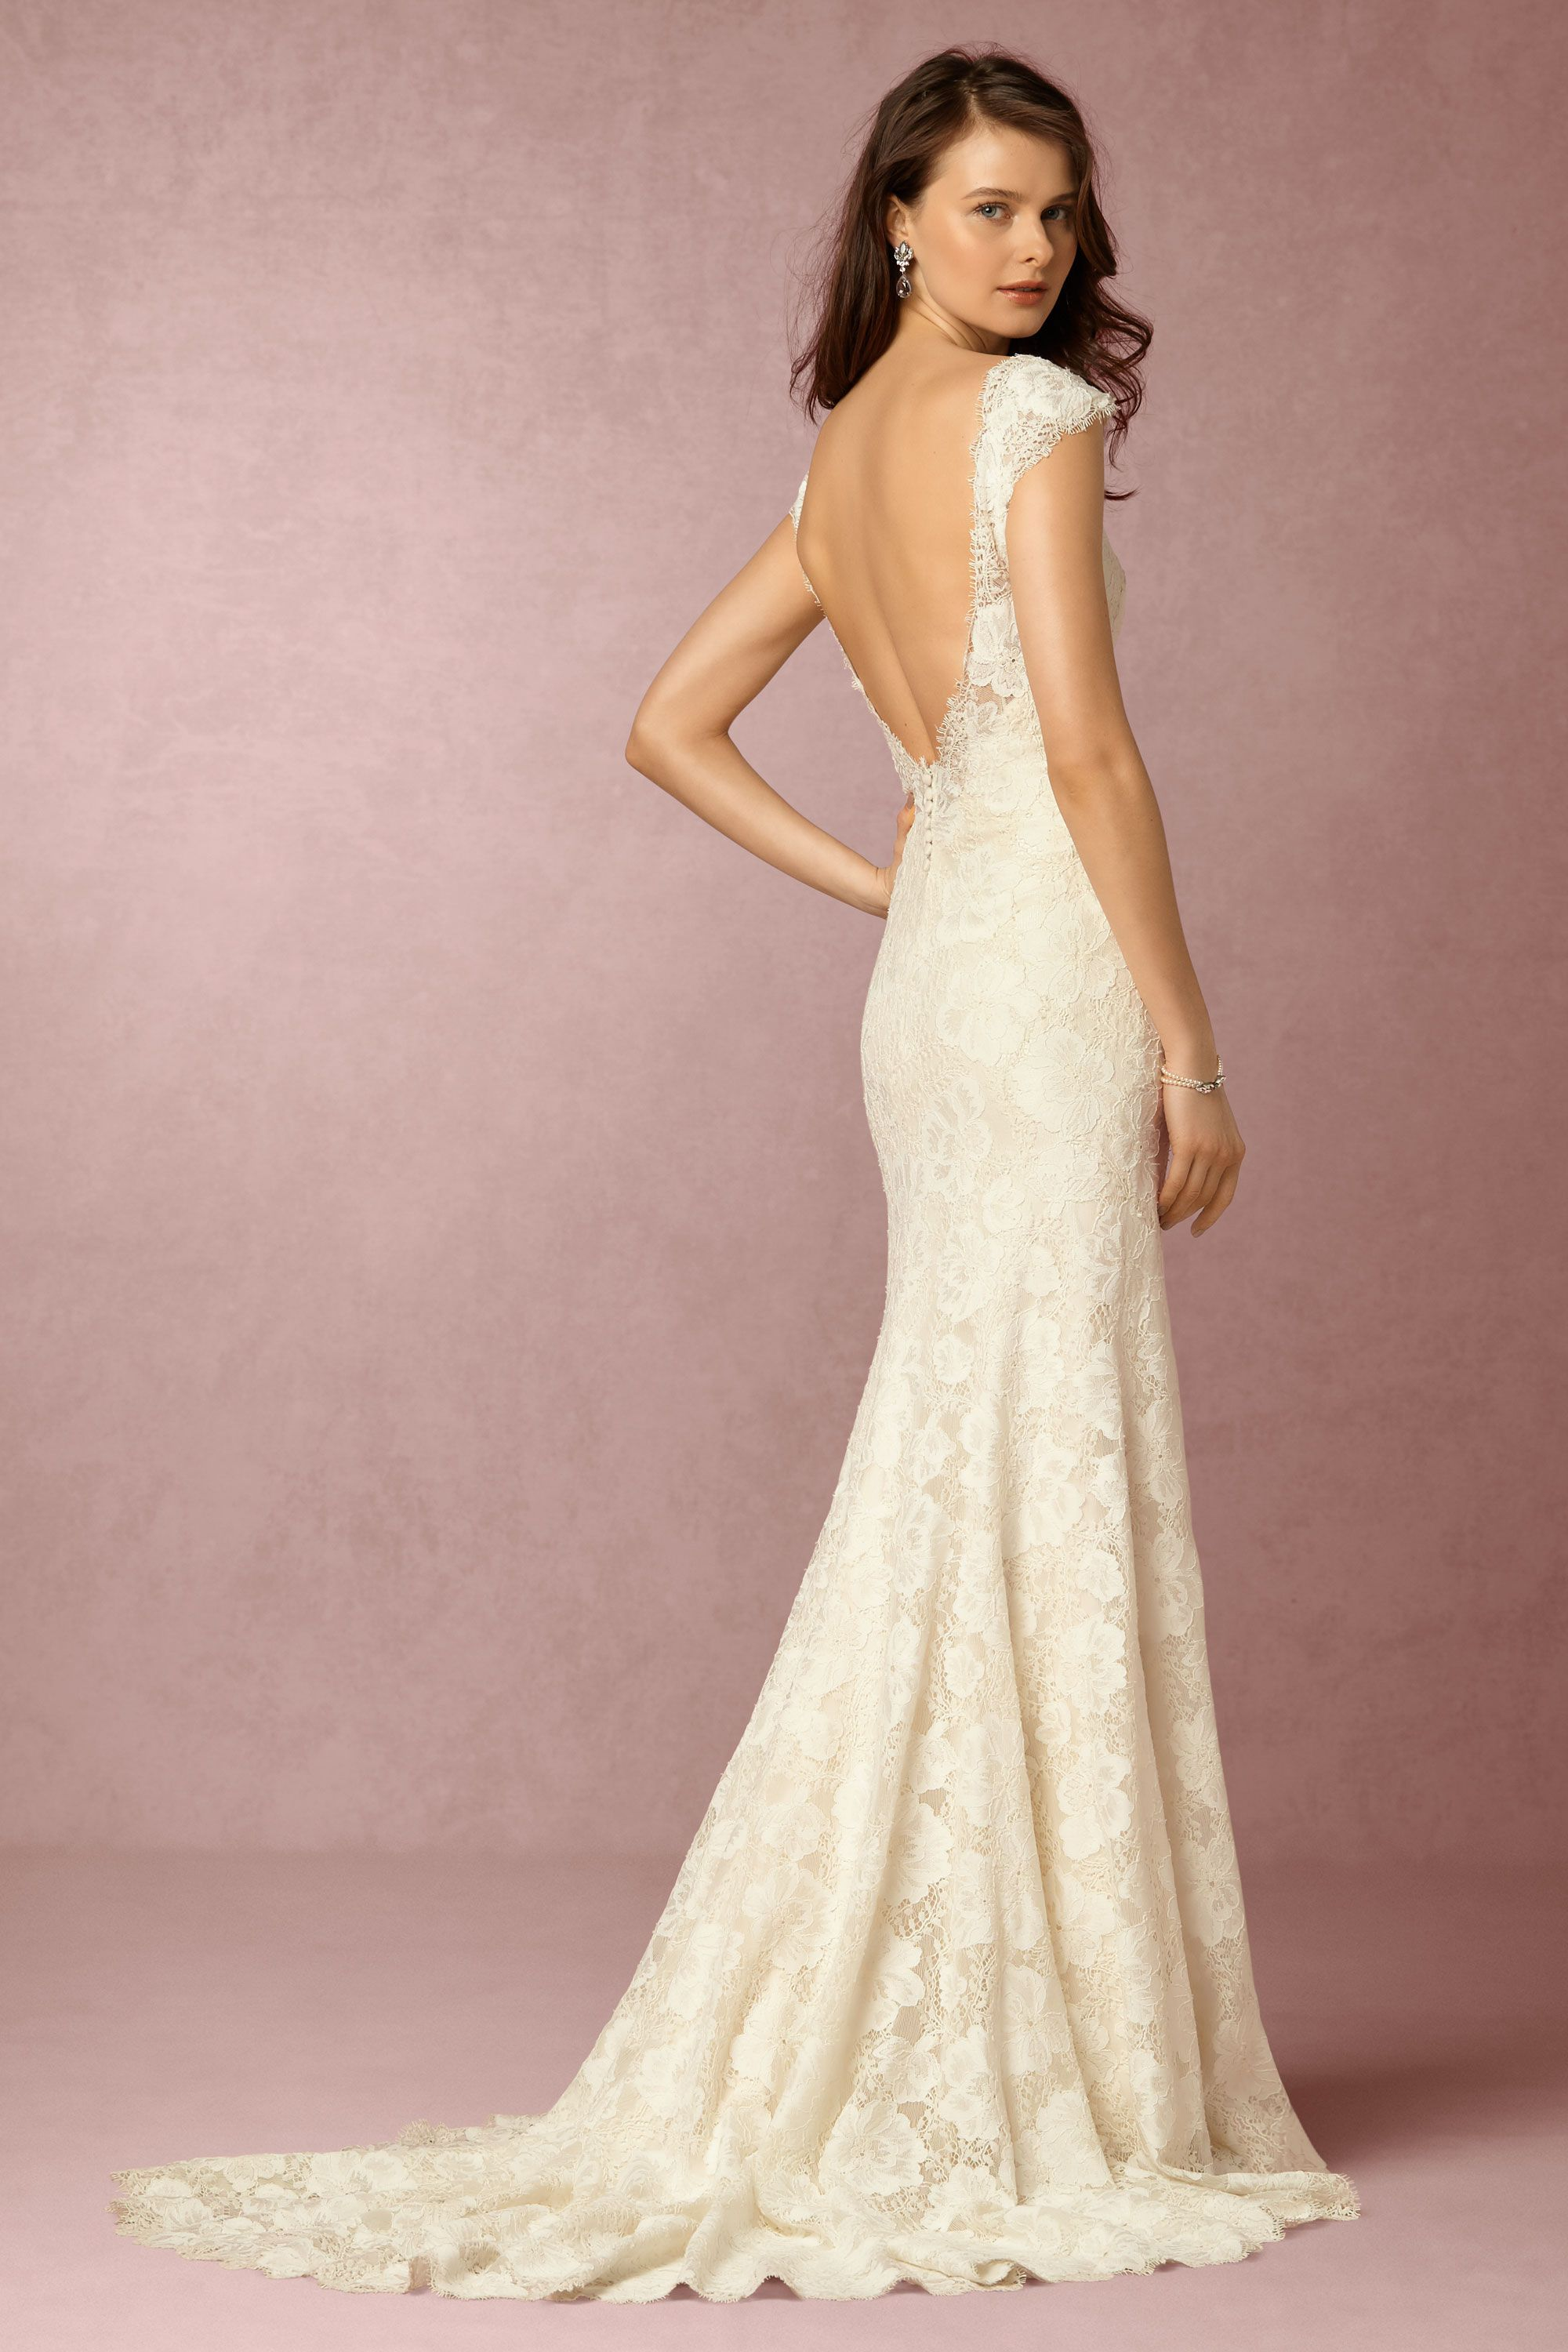 Backless Wedding Gown Dress